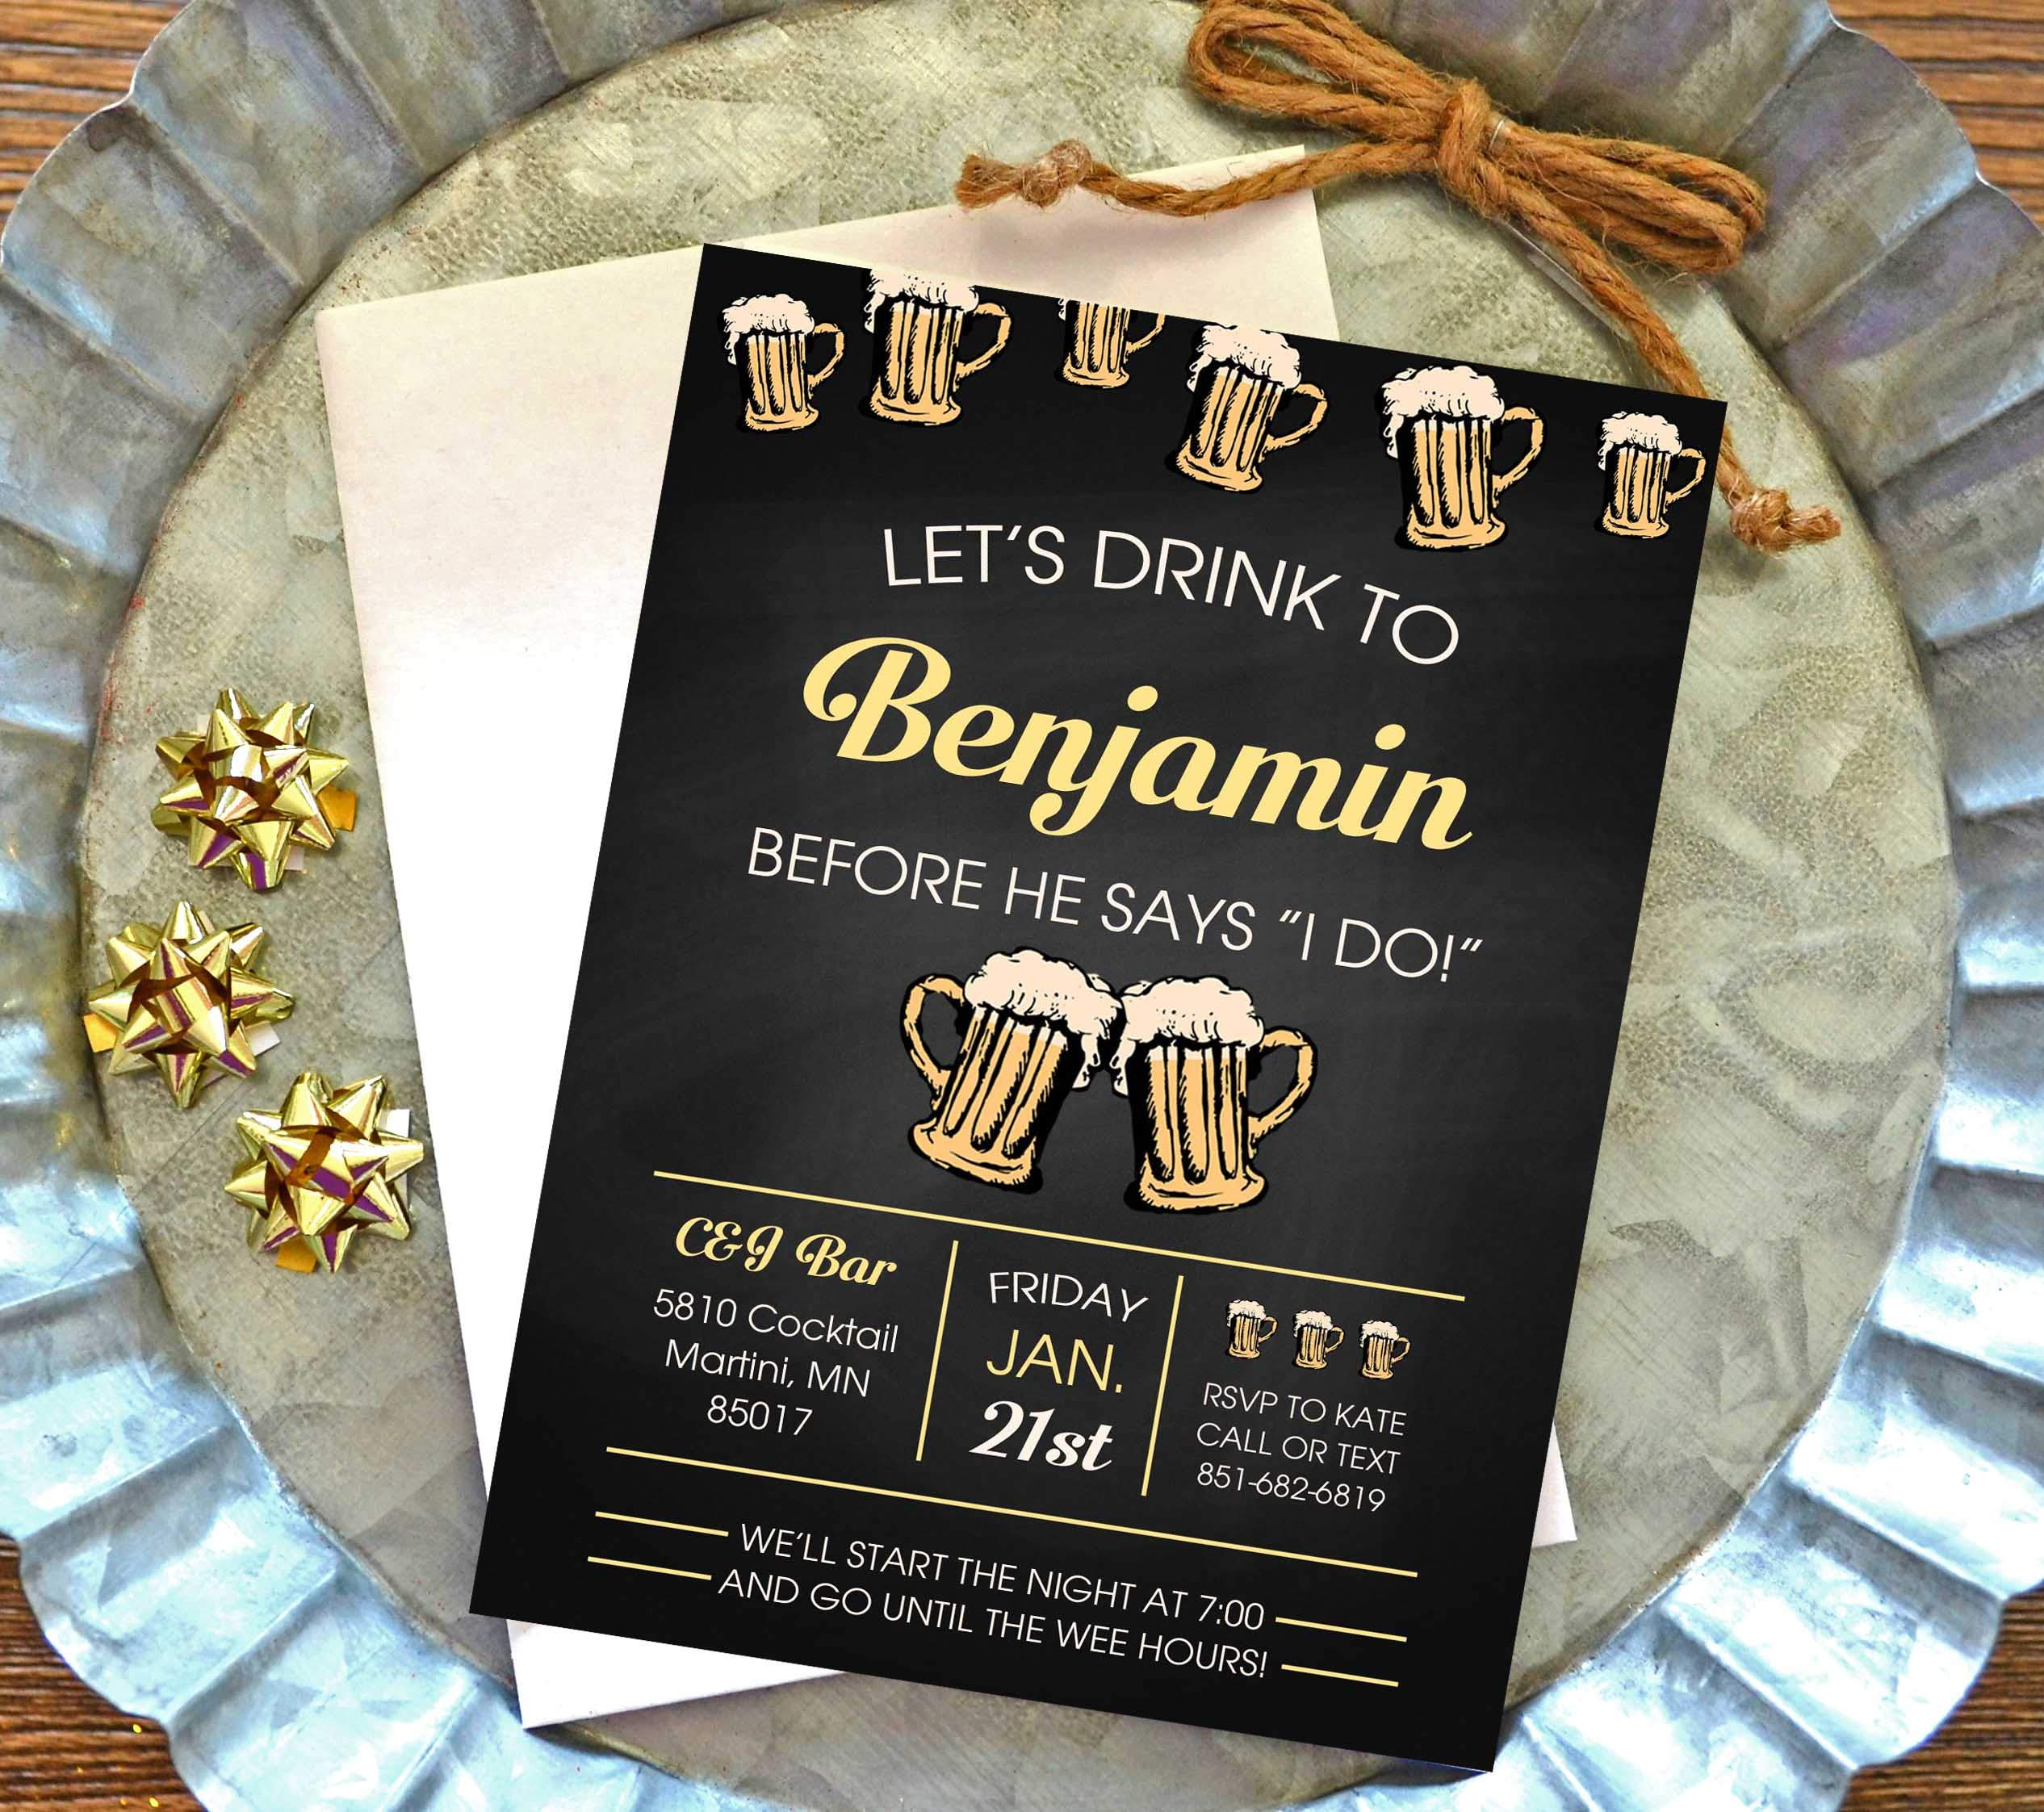 Bachelor party invitation set of 10 by Lacey Fields